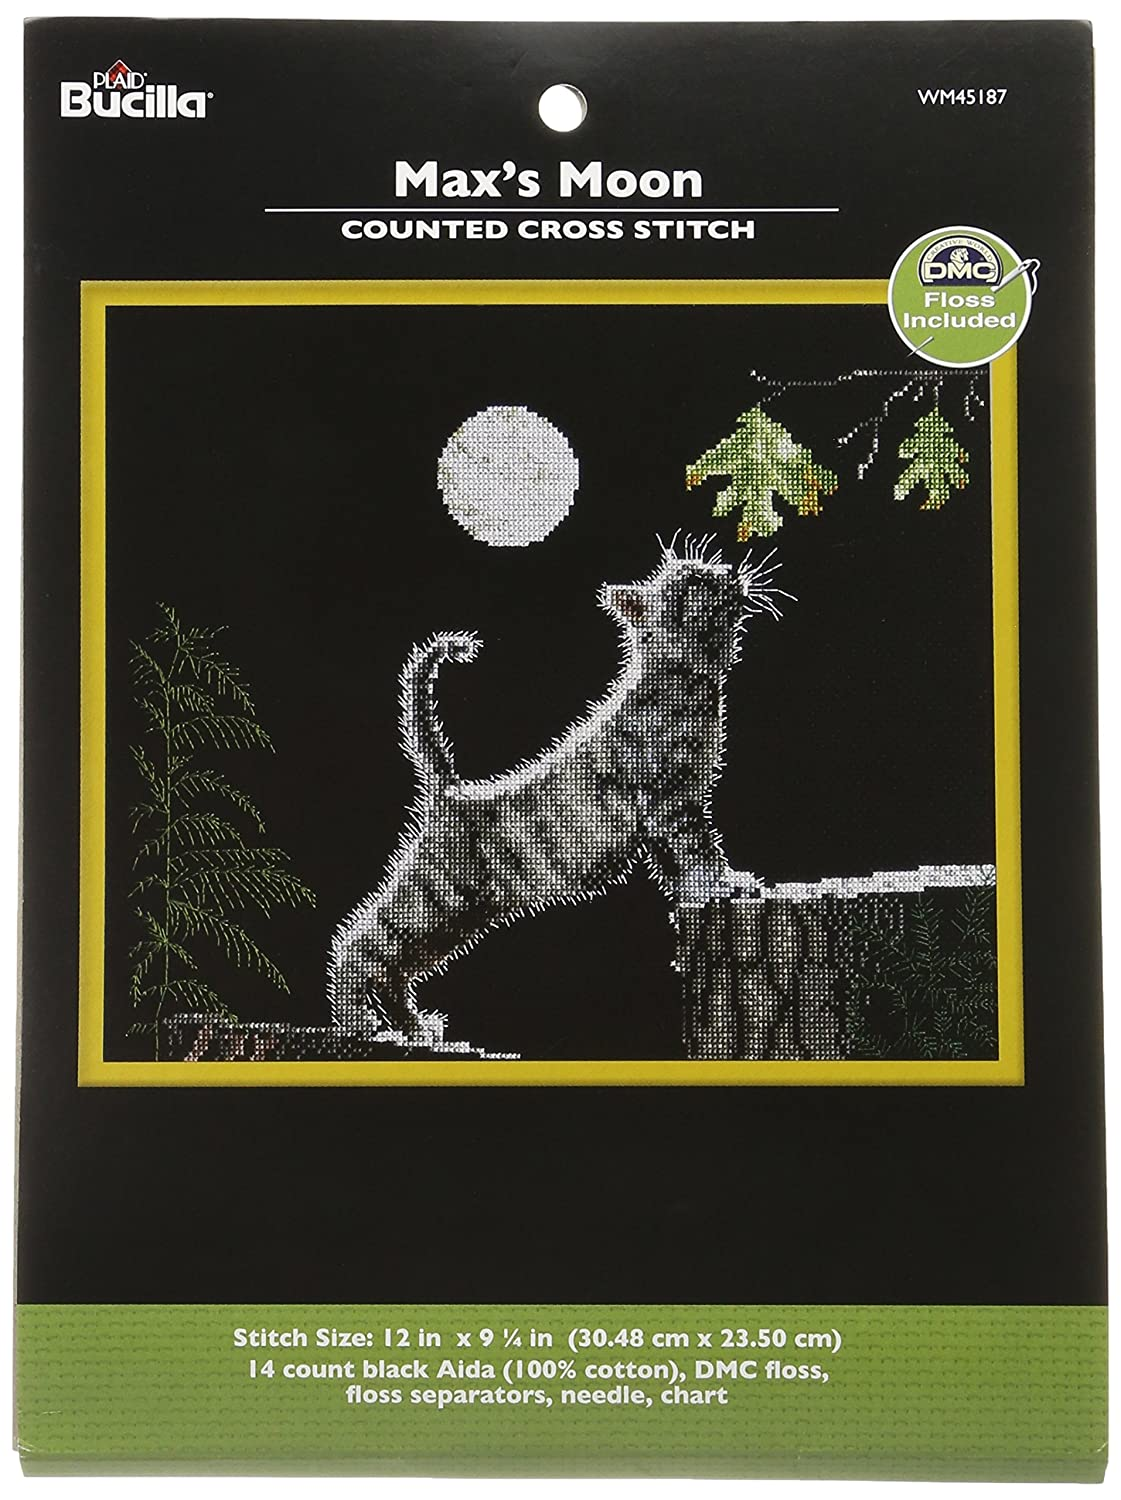 Bucilla Counted Cross Stitch Kit, 12 by 9.25-Inch, 45187 Max's Moon 45187 Max' s Moon Plaid Inc.